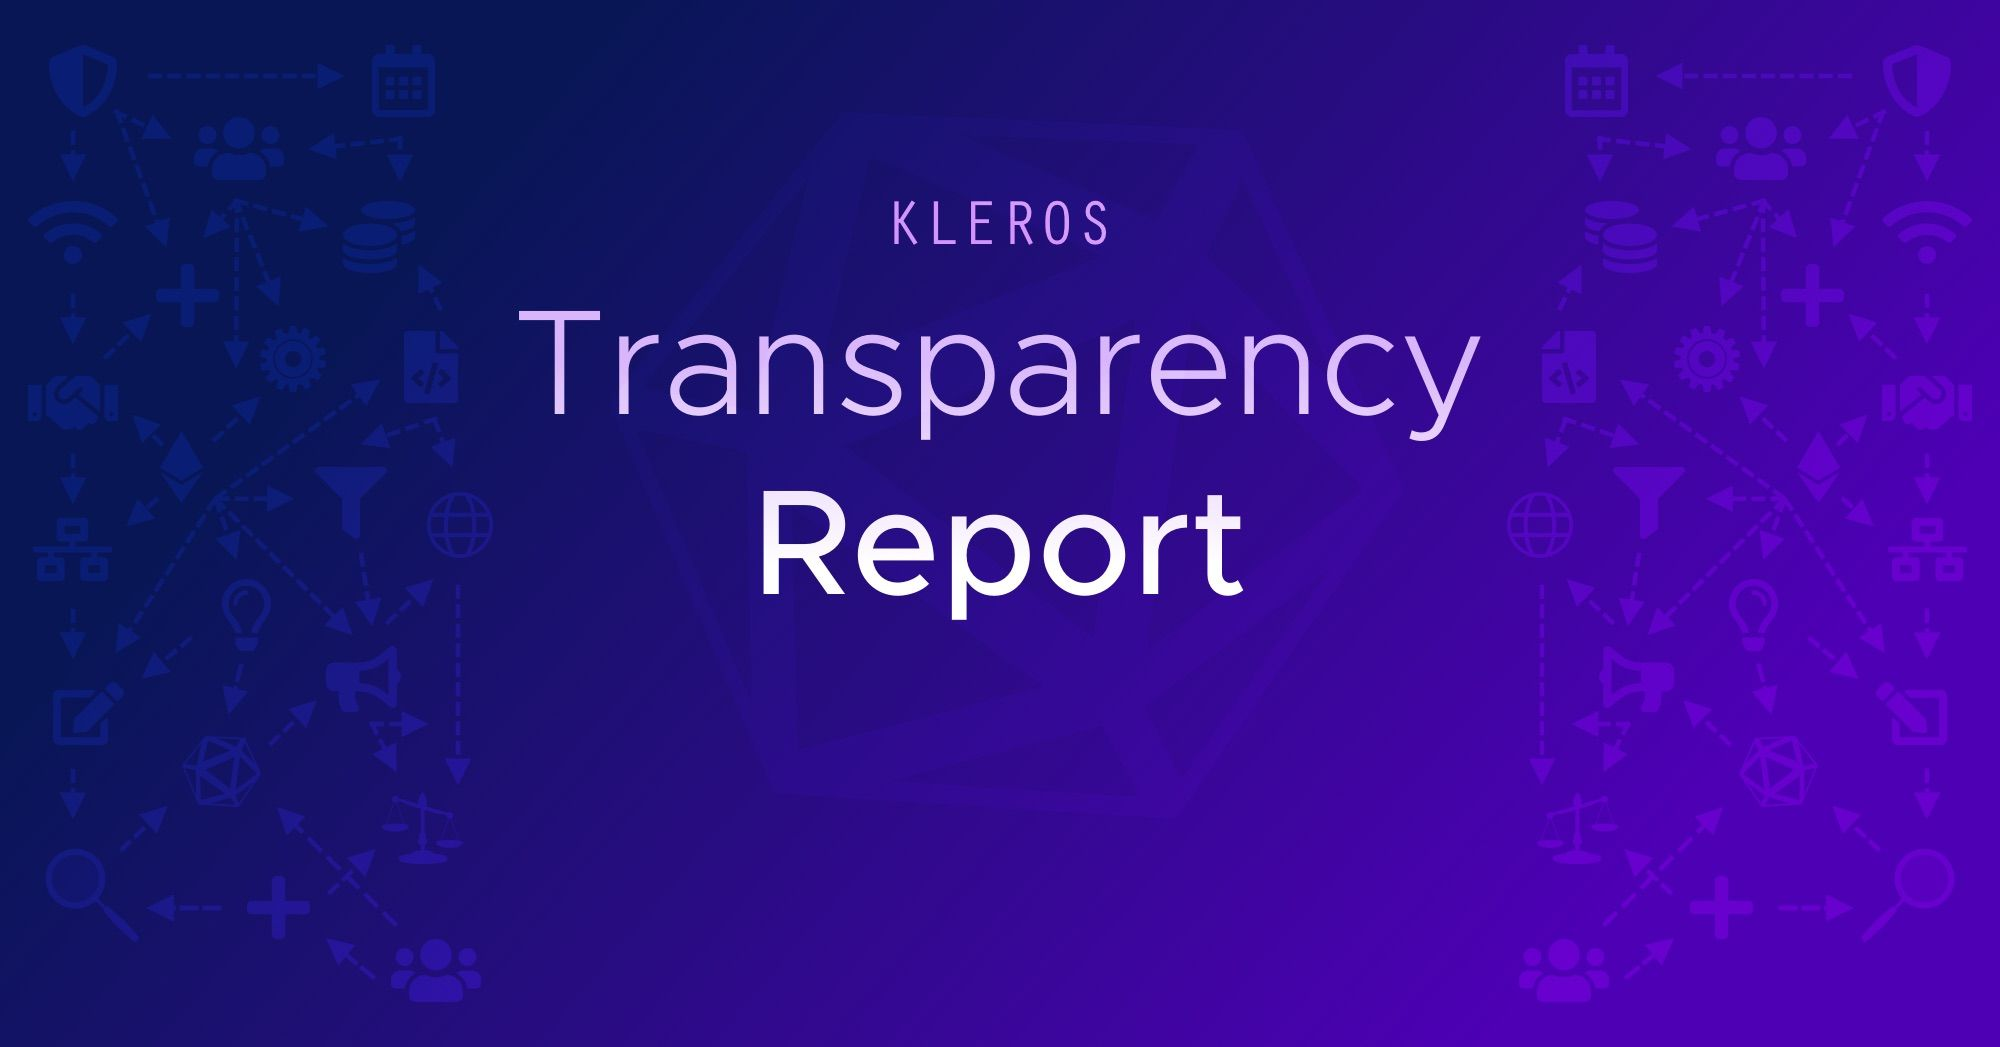 Kleros Transparency Report